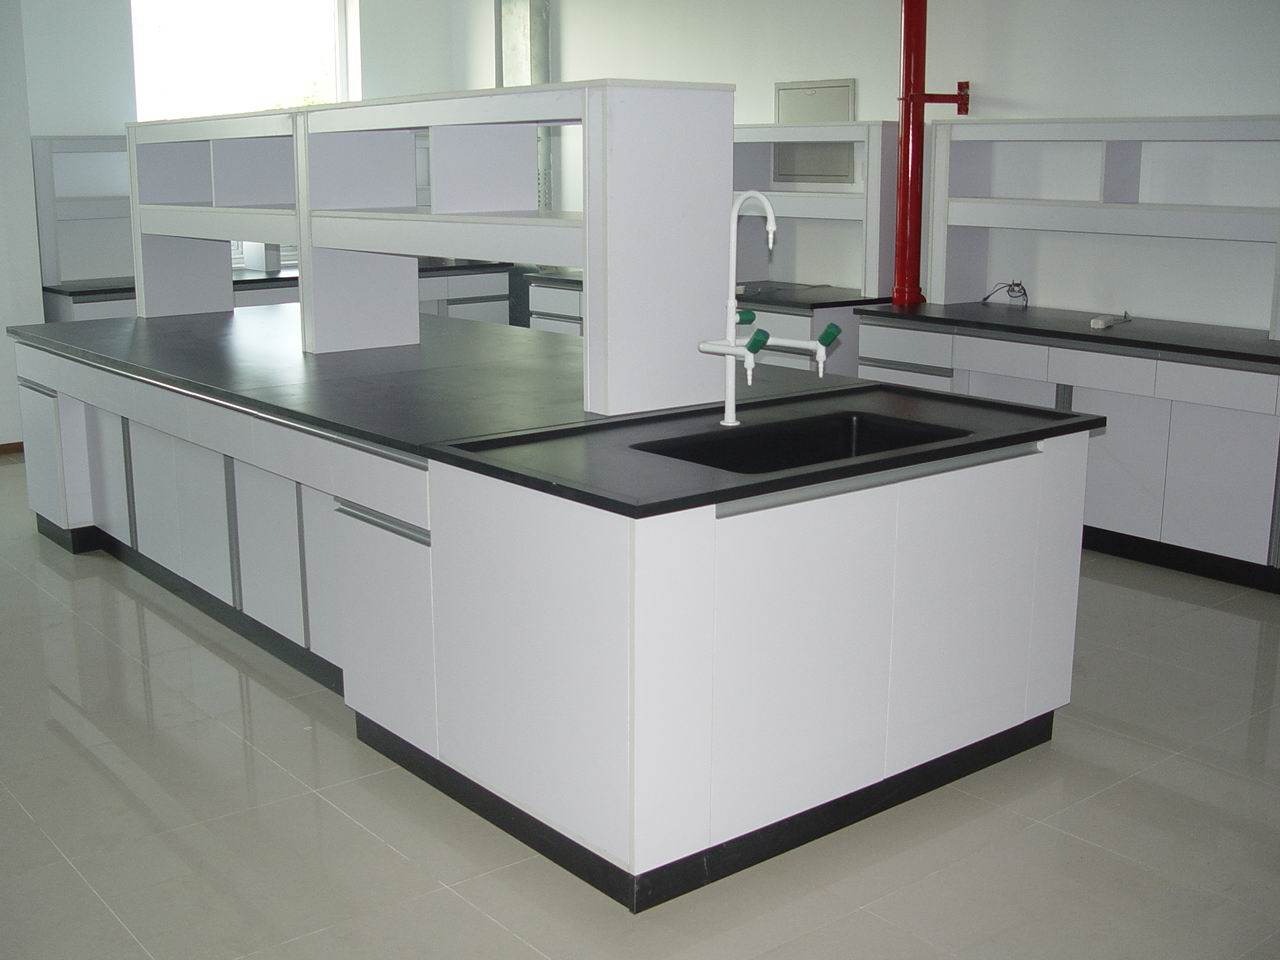 Lab Bench 5 28 Images Biology Lab Bench Of Item 91350874 Ergolab Laboratory Bench Systems